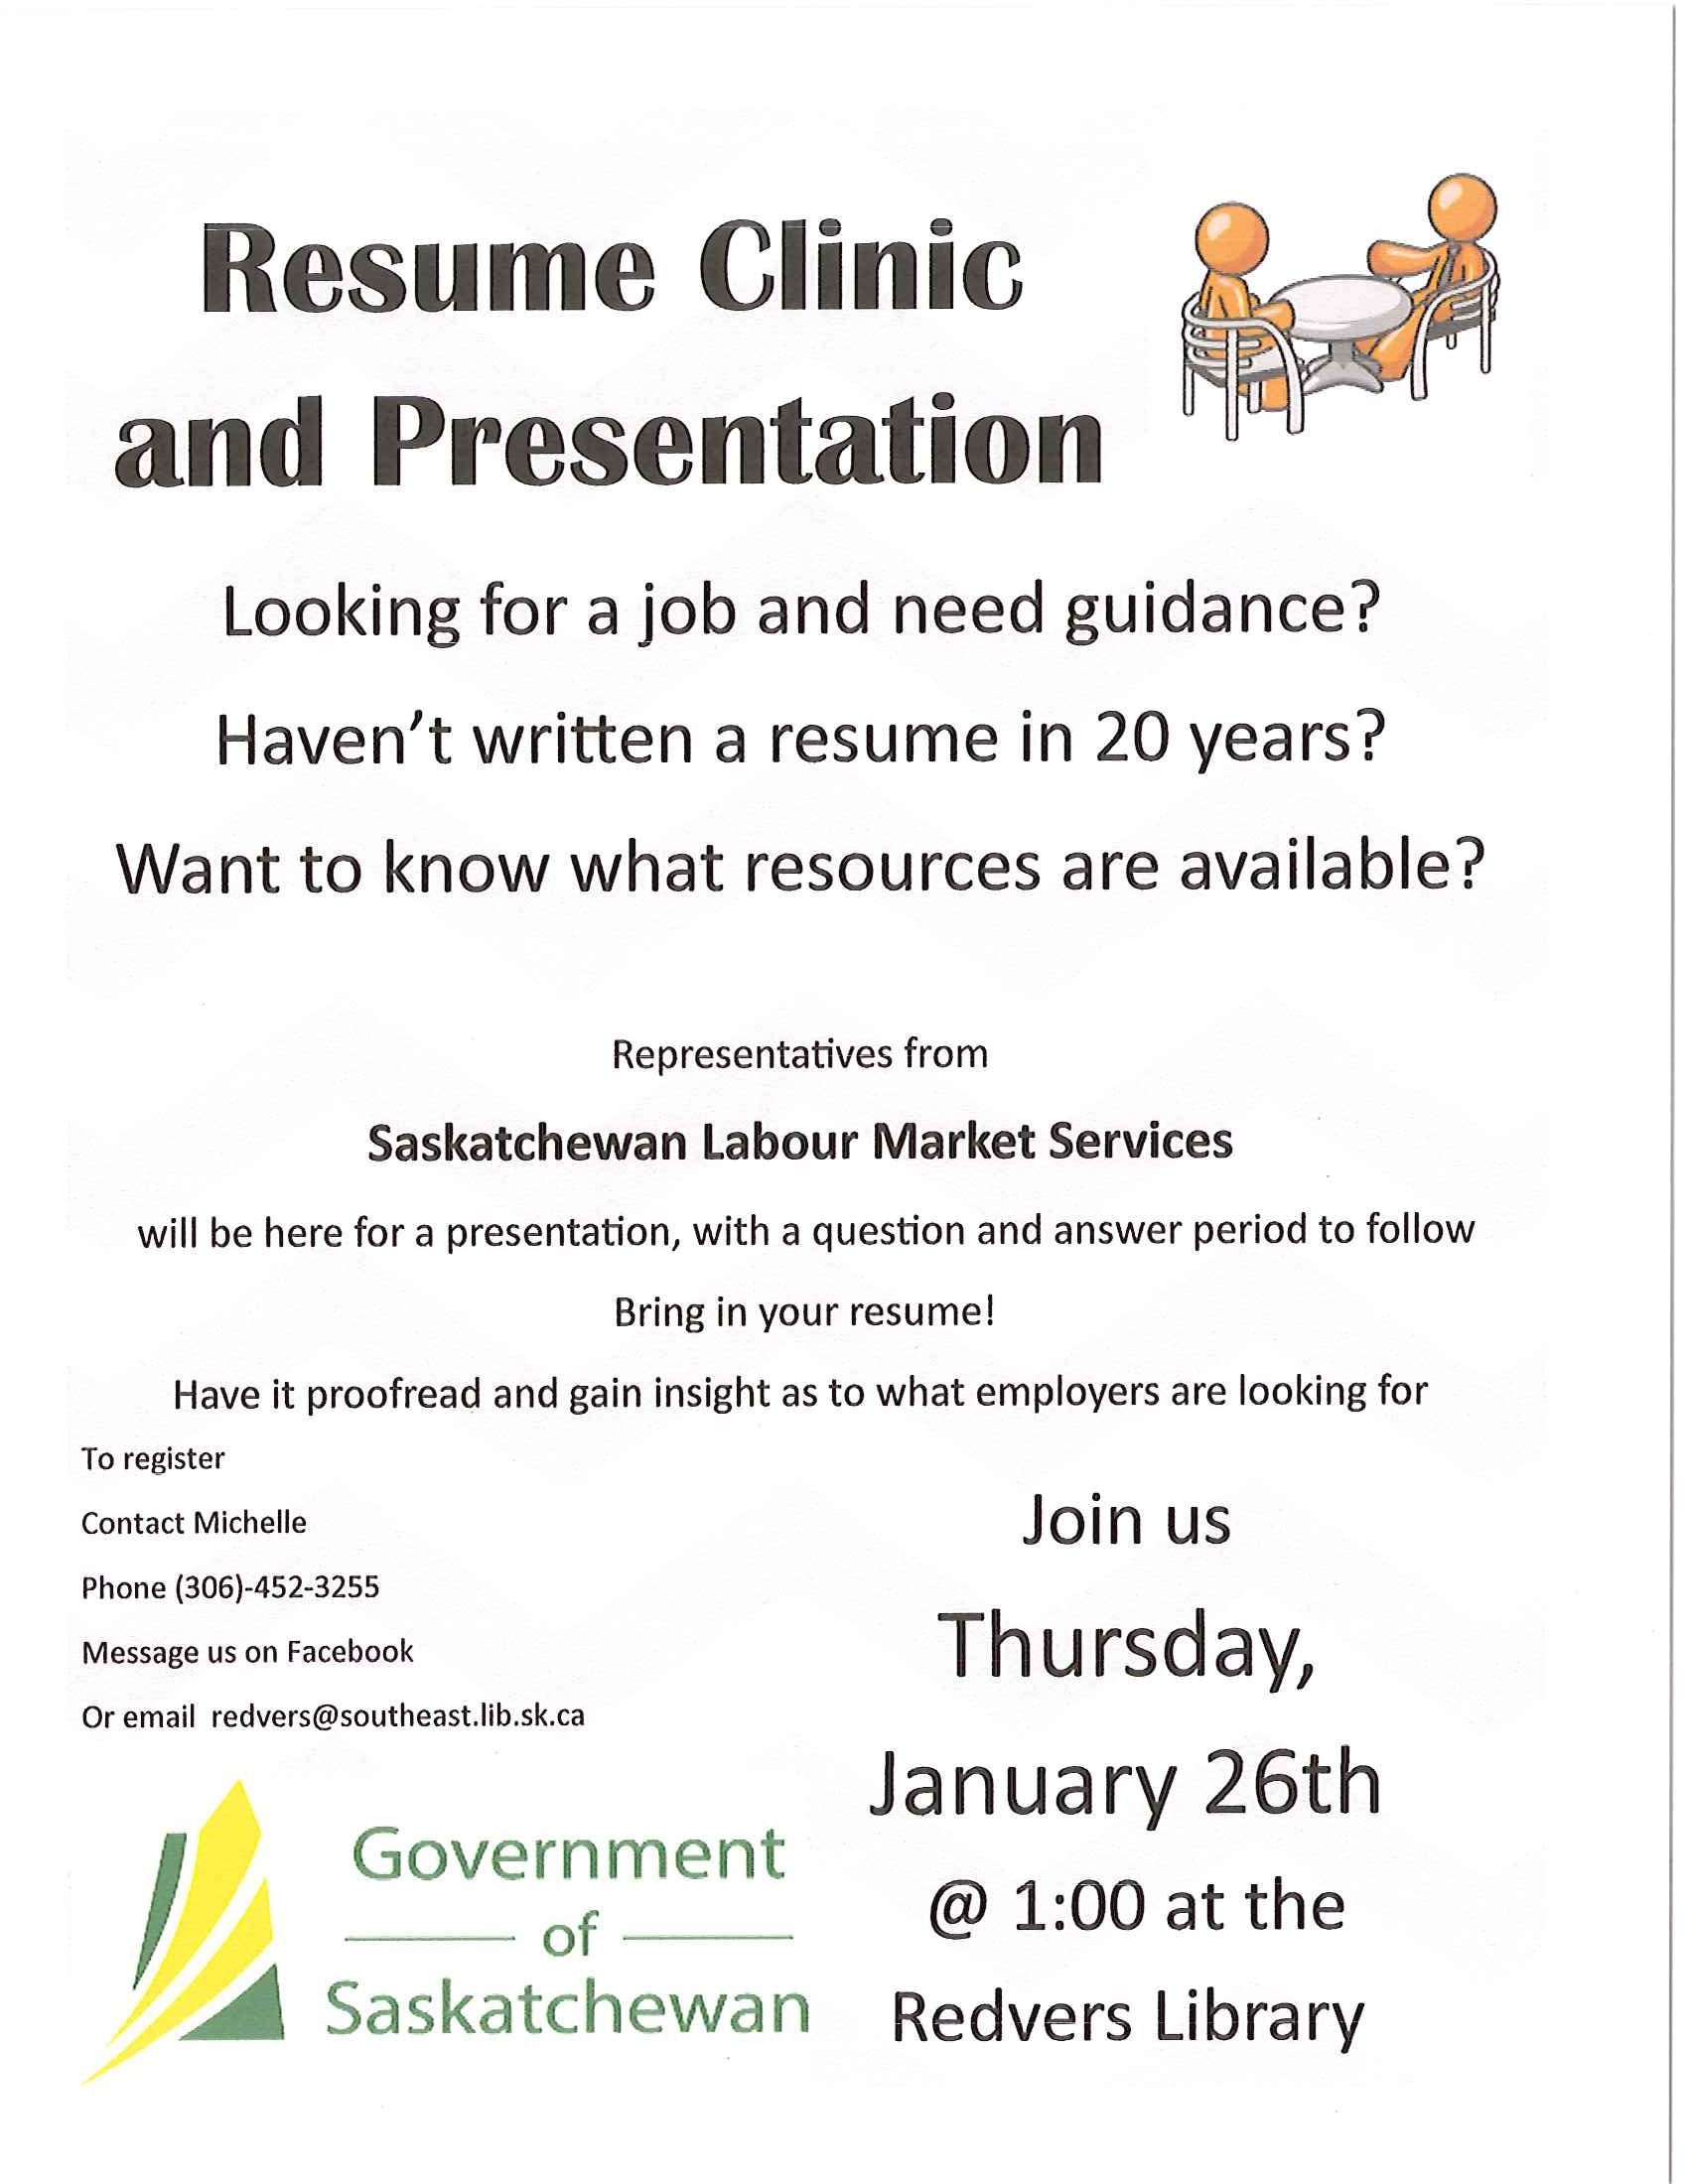 need help writing or editing a resume come down to the library and get some help from saskatchewan labour market services please see poster for details